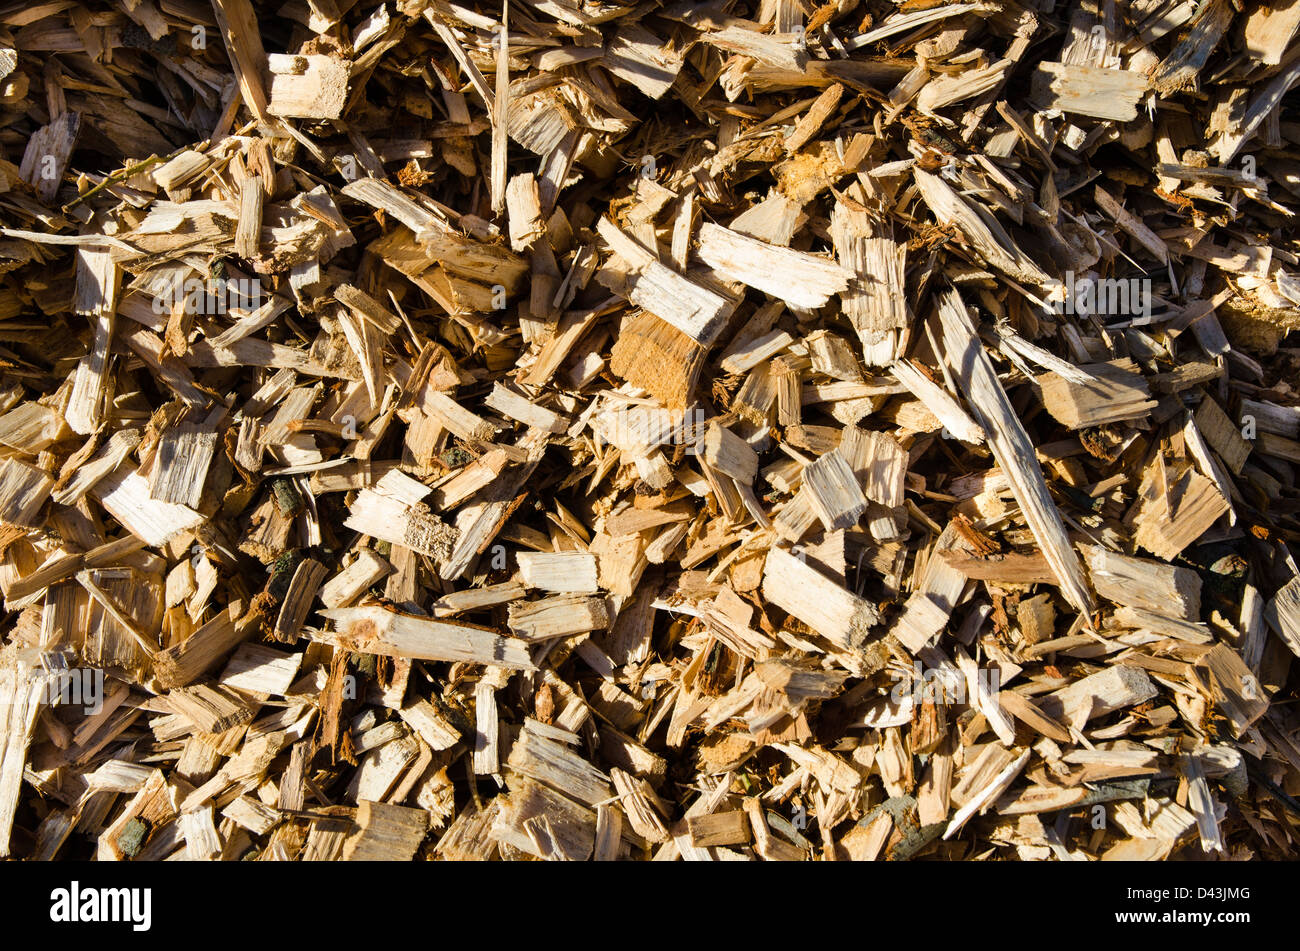 Woodchips Stock Photos & Woodchips Stock Images - Alamy